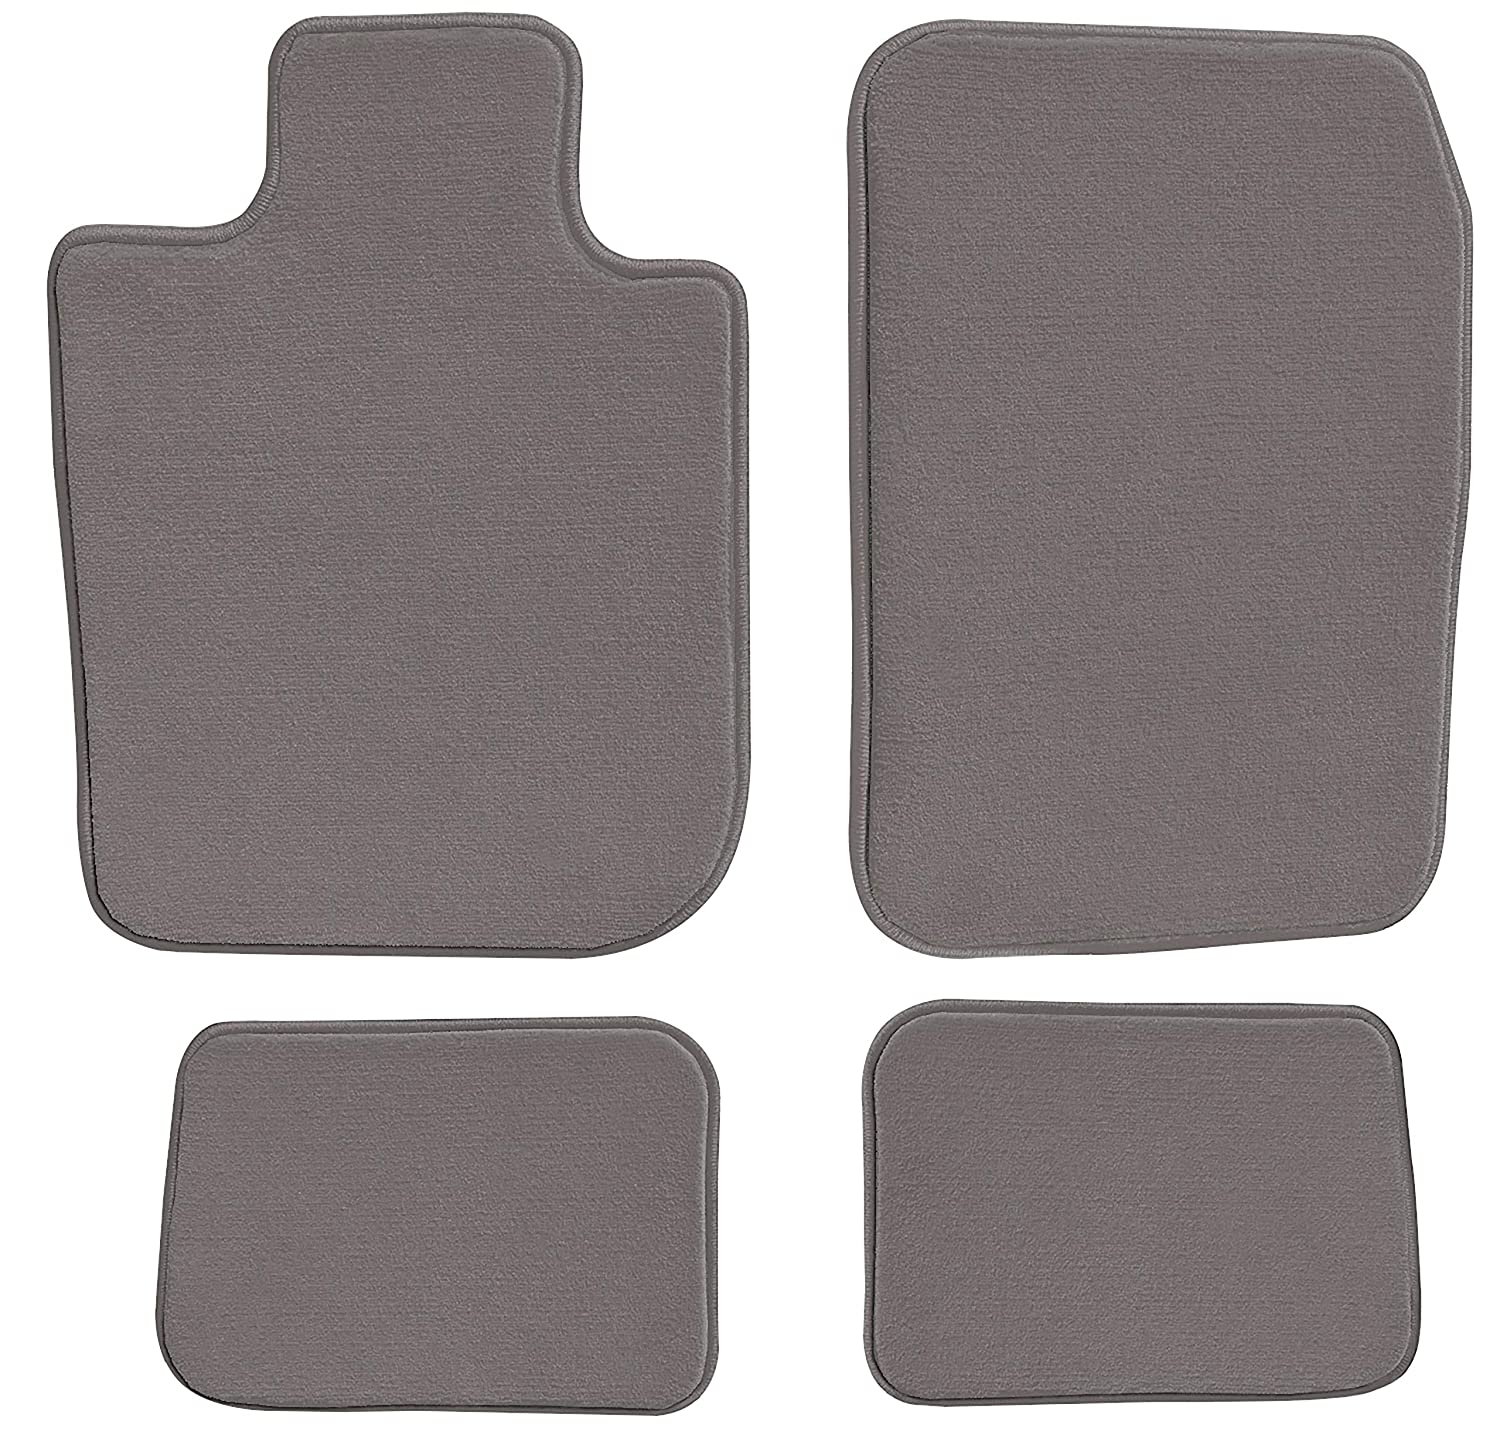 2012 Lincoln MKT Grey Loop Driver Passenger /& Rear Floor GGBAILEY D3902A-S1A-GY-LP Custom Fit Car Mats for 2010 2011